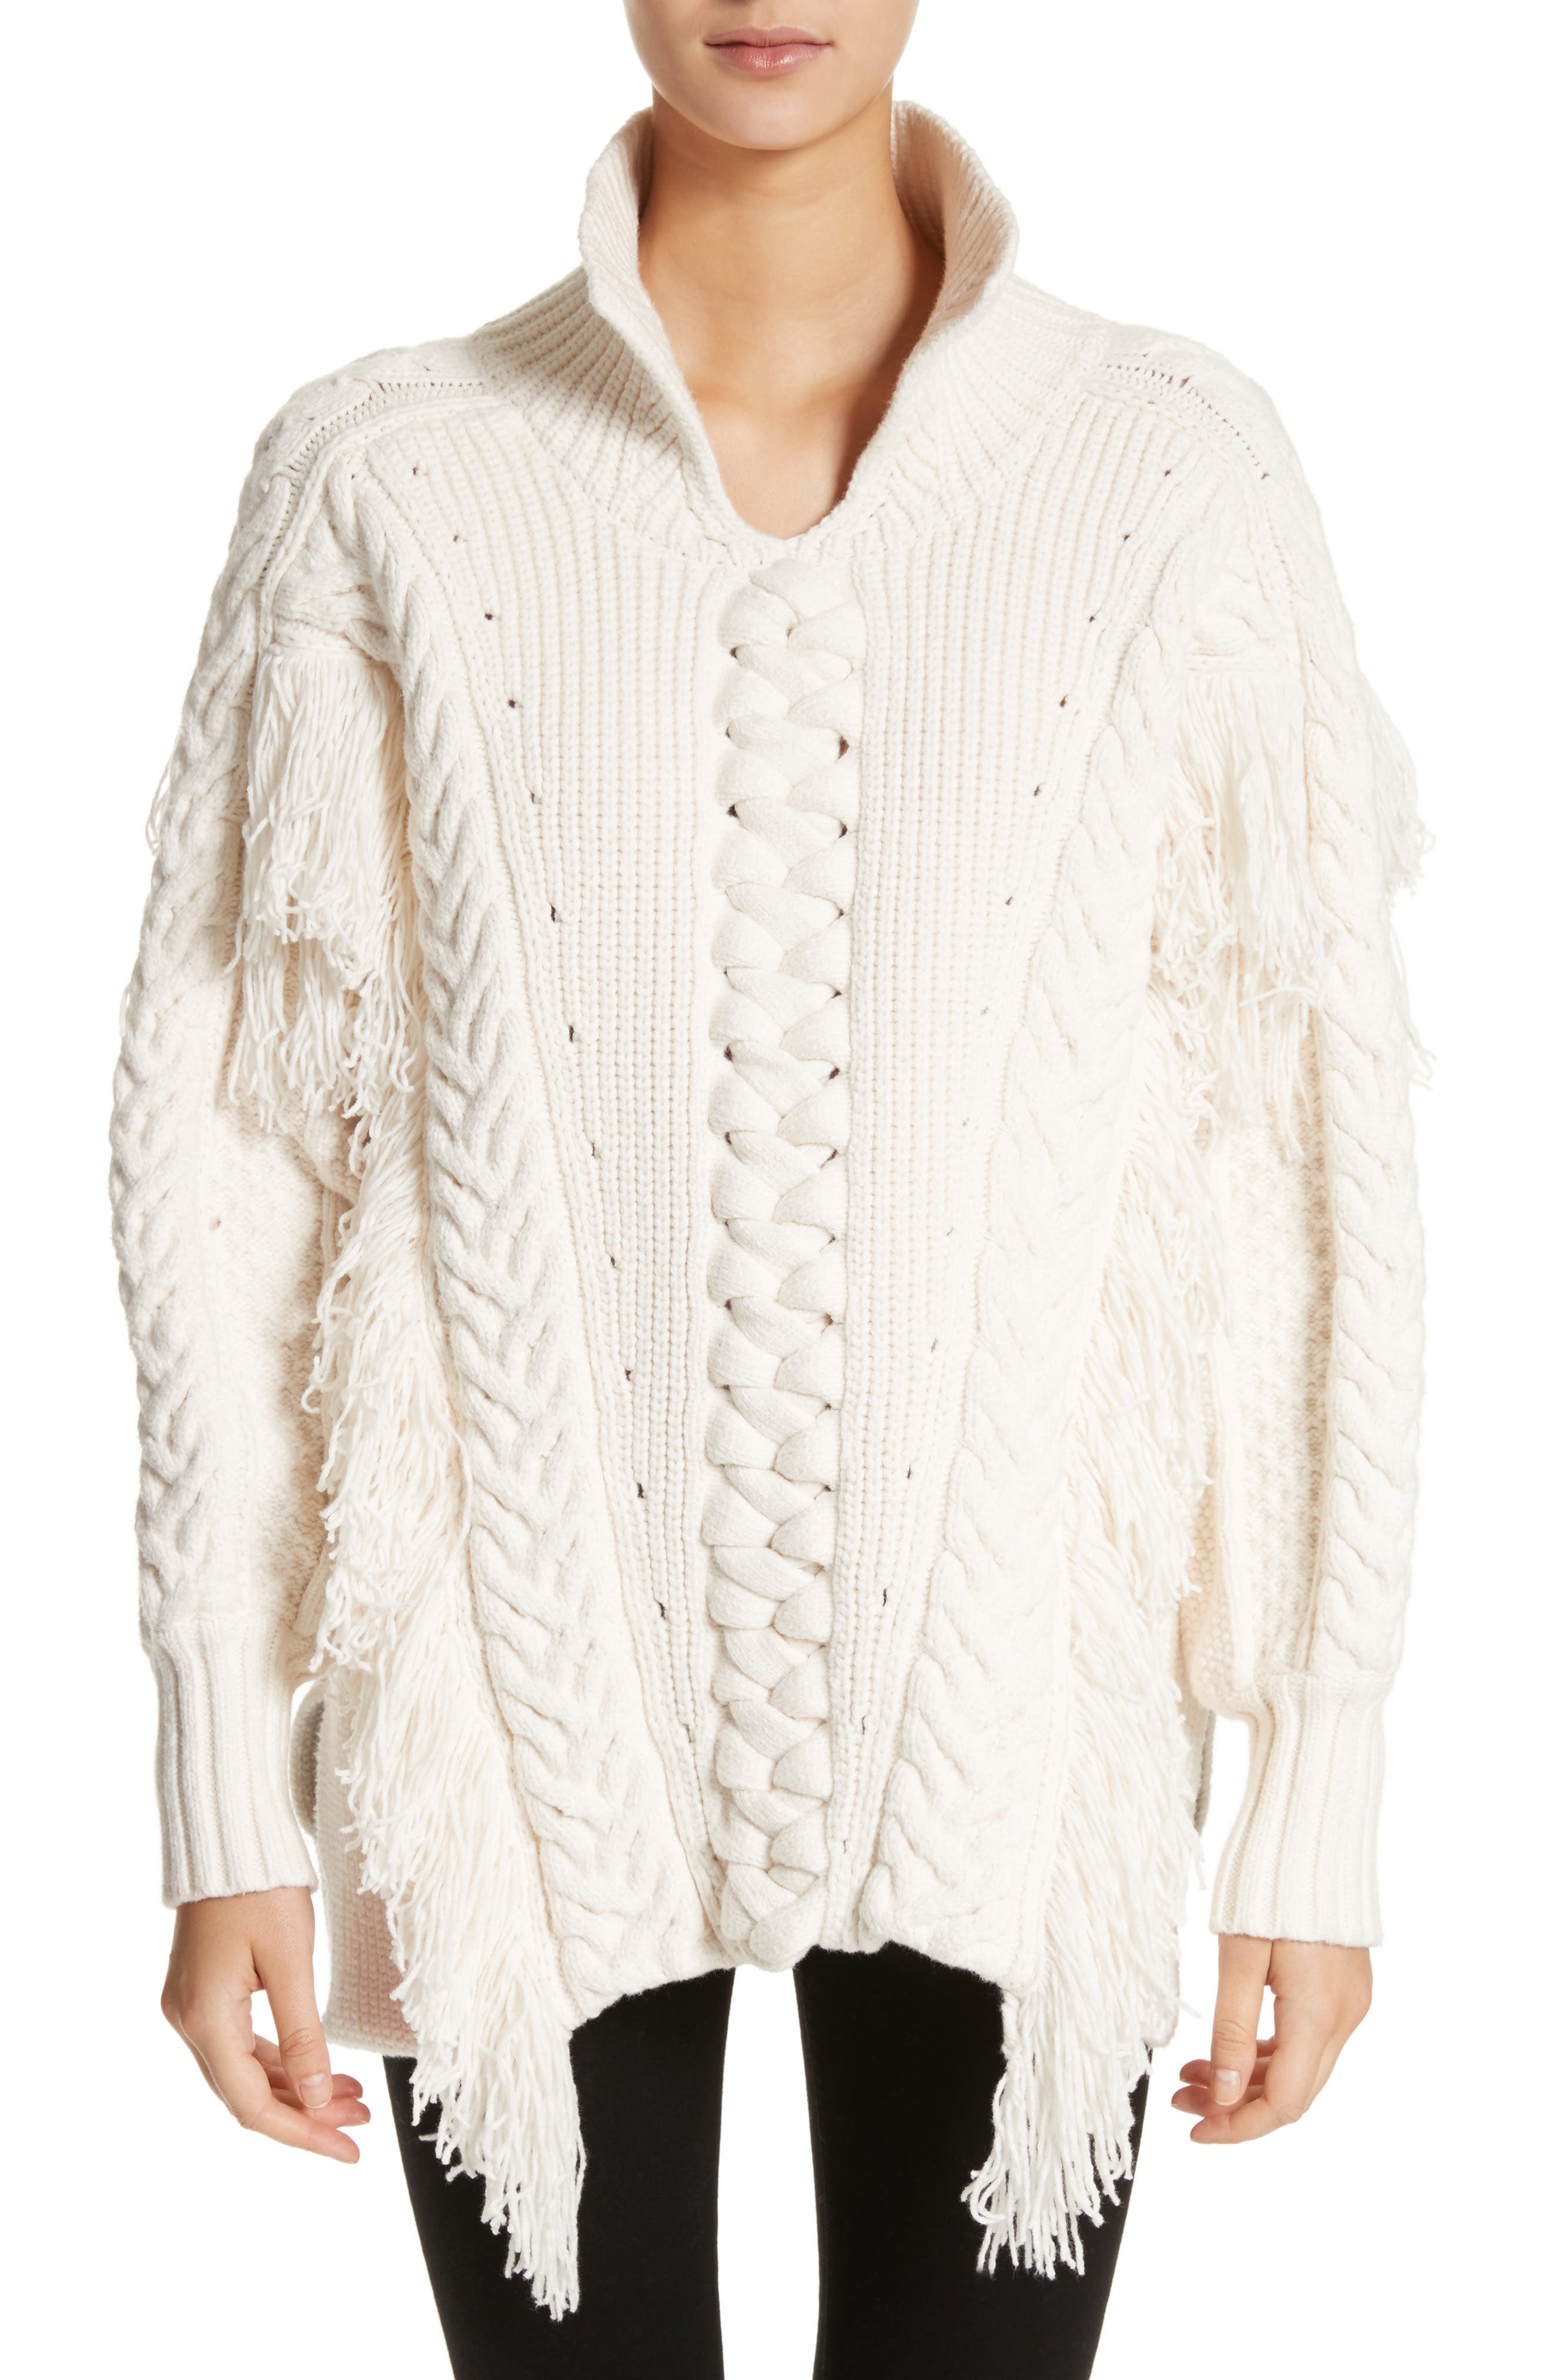 Borbore Fringed Cable Knit Sweater,                         Main,                         color, 103